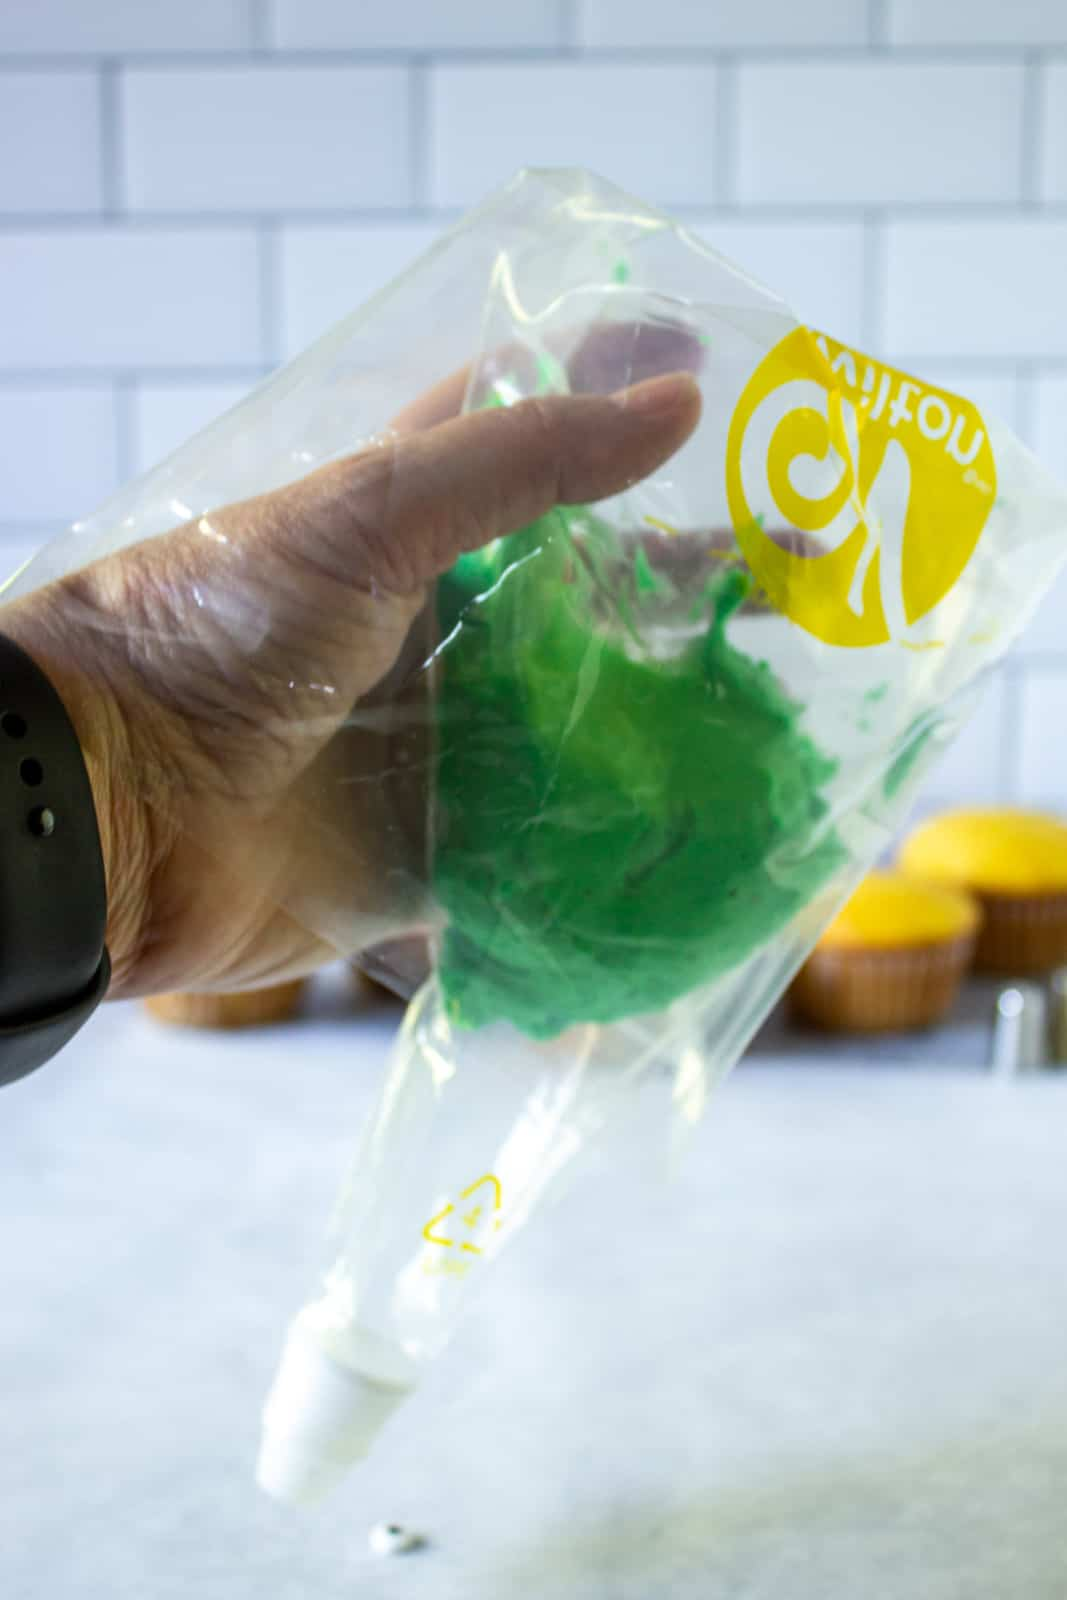 A cake decorating bag being filled with green frosting.